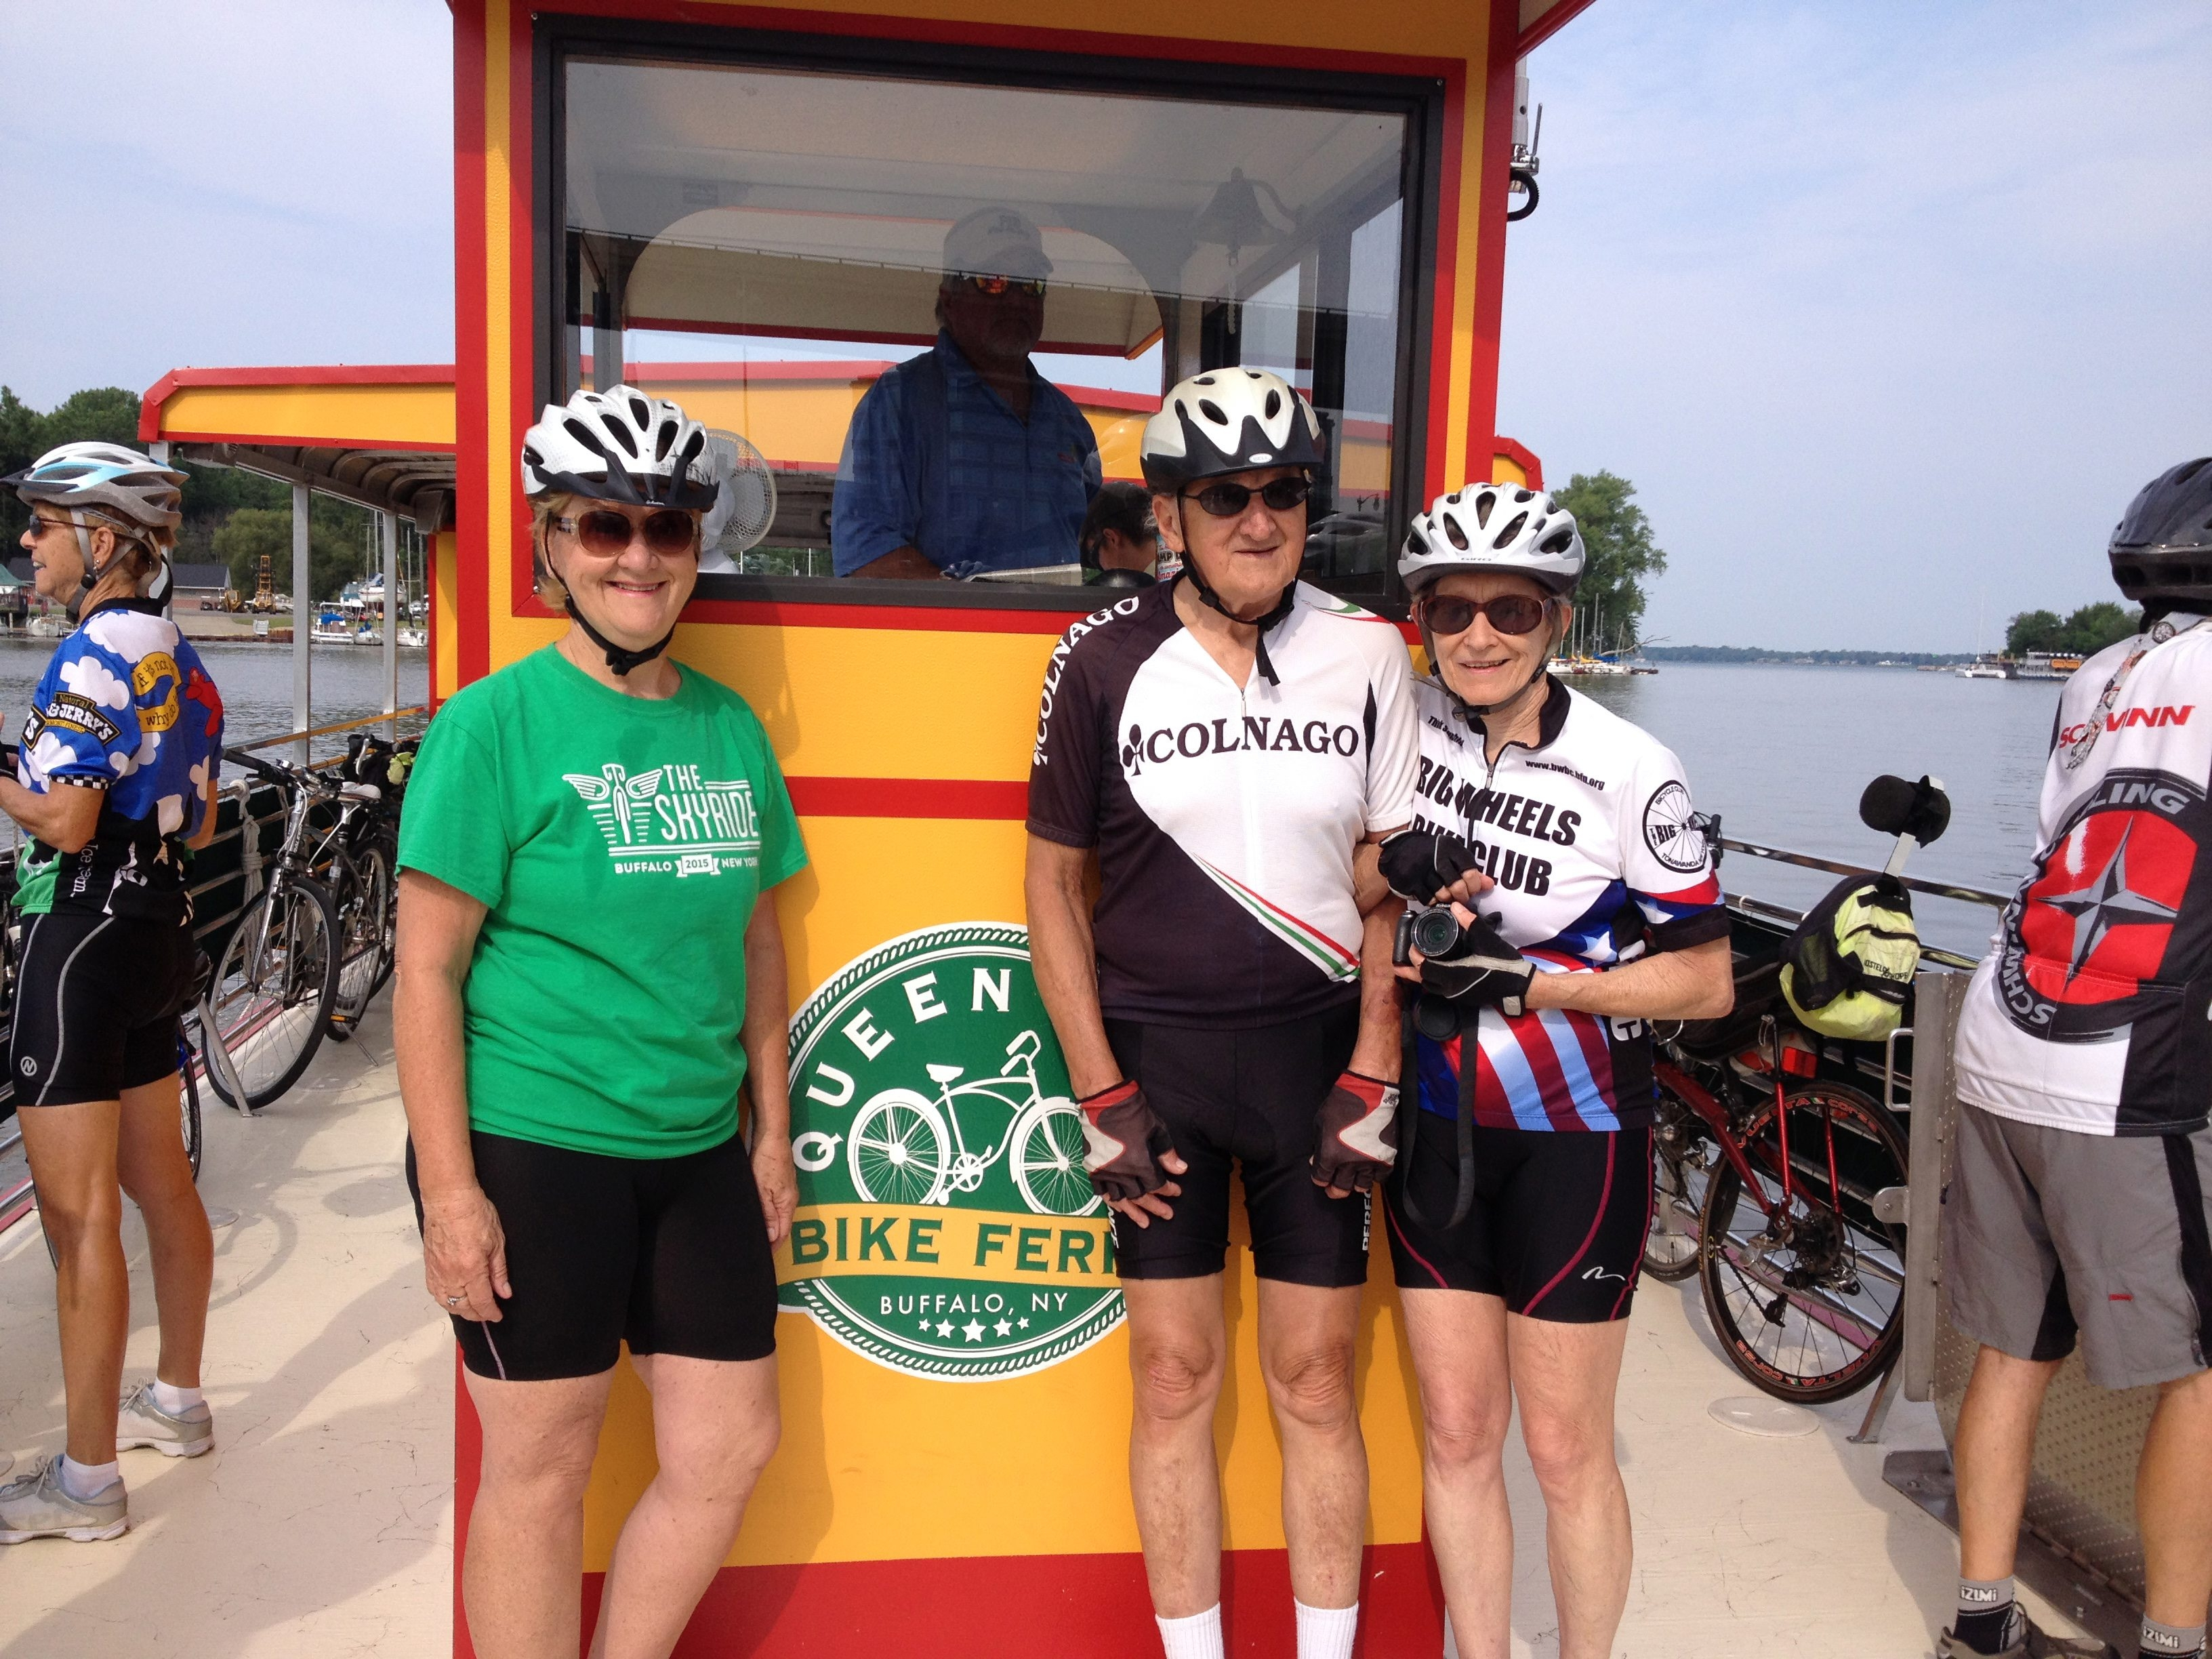 Nancy Baumann, left, rides with Bruno Perfette, Patricia Lord and dozens of others Big Wheels Bicycle Club members.